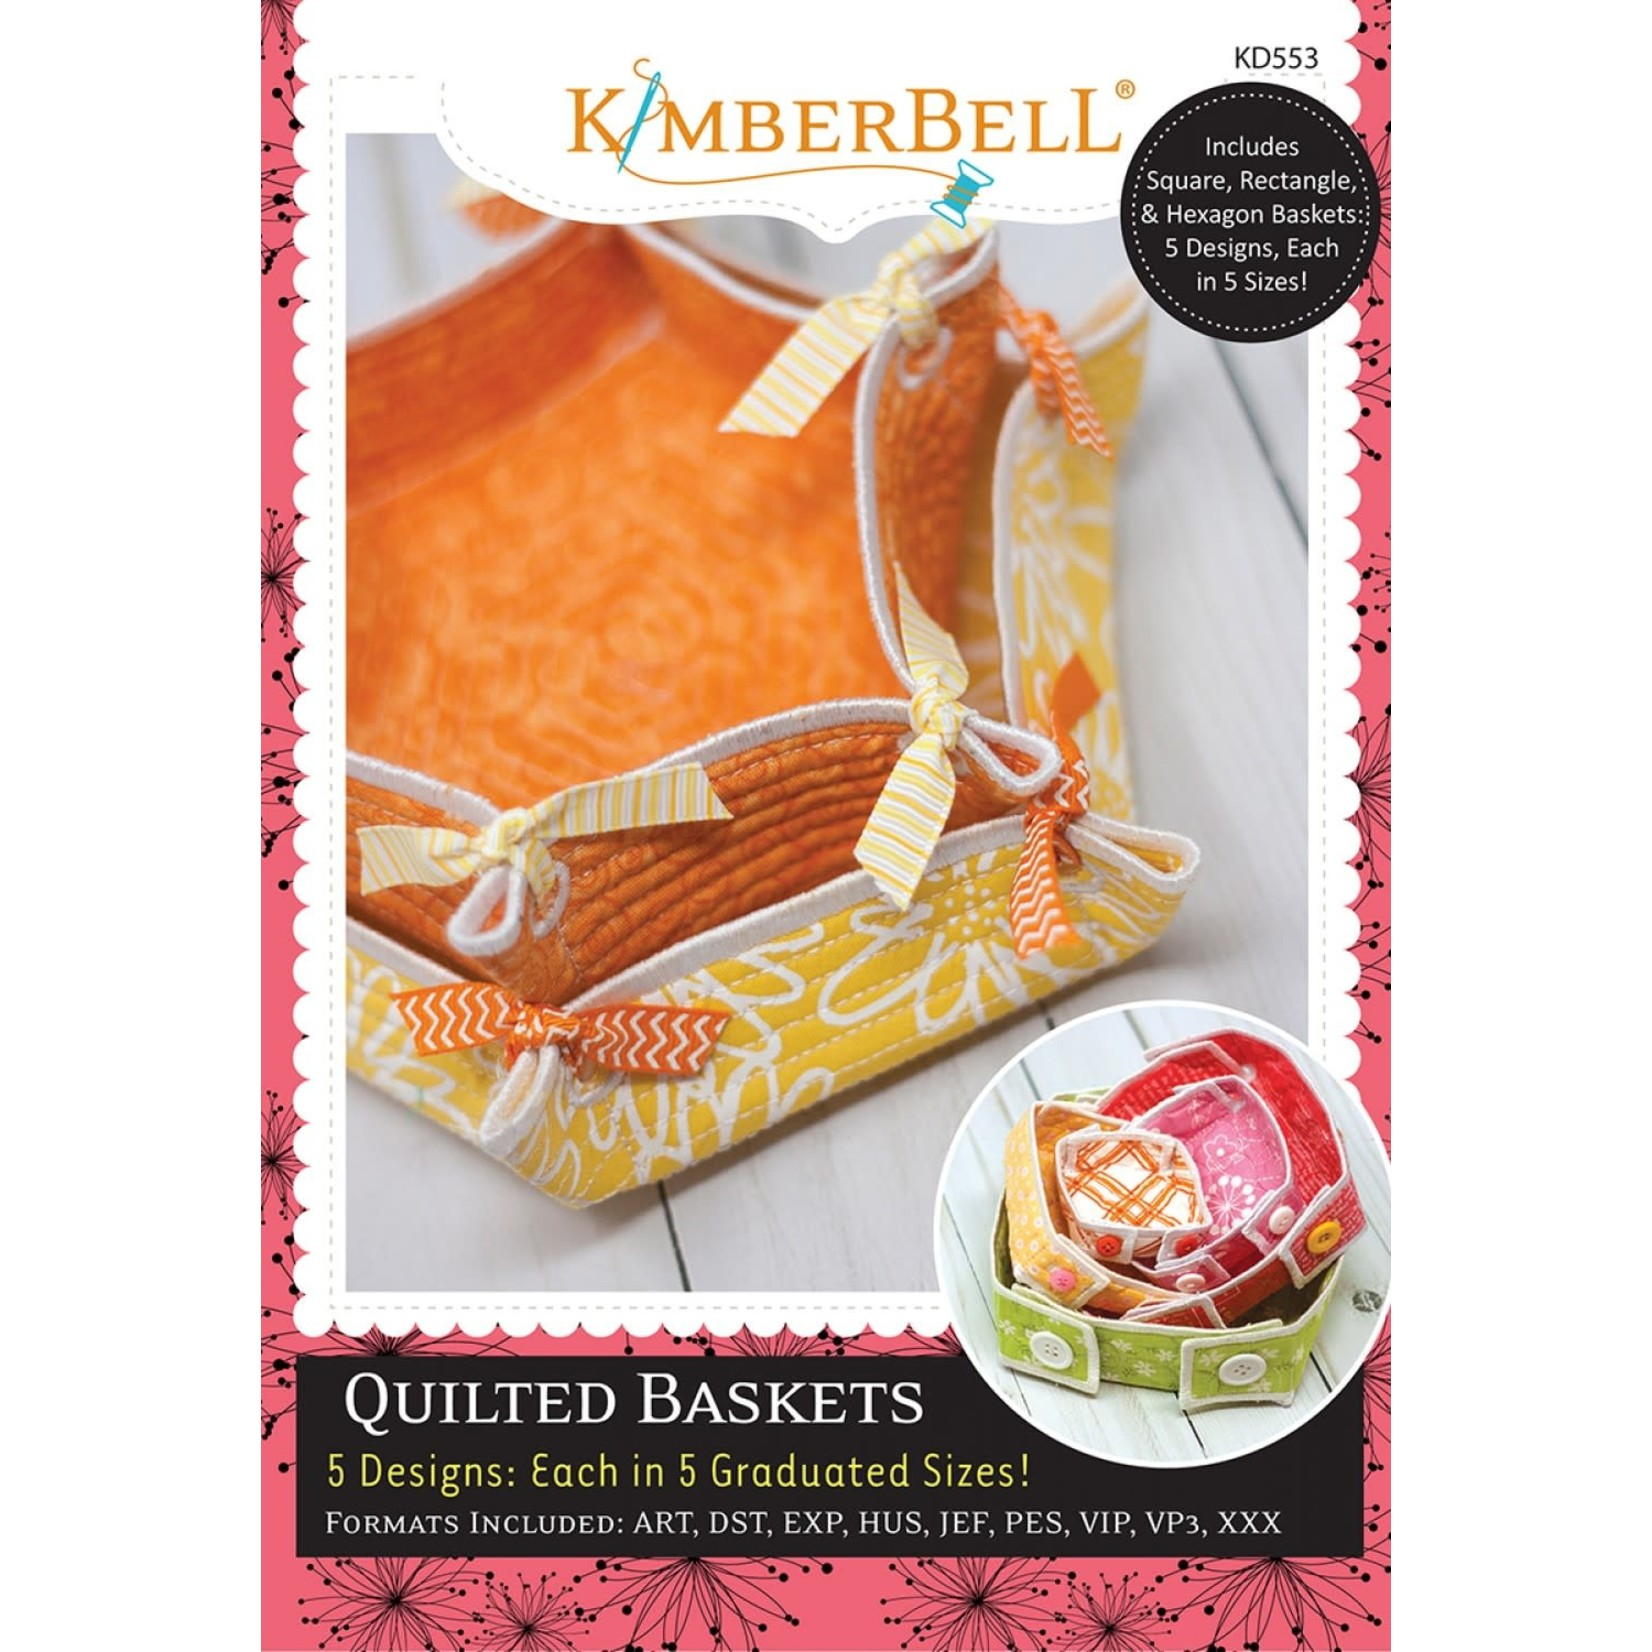 KIMBERBELL DESIGNS Quilted Baskets Machine Embroidery CD